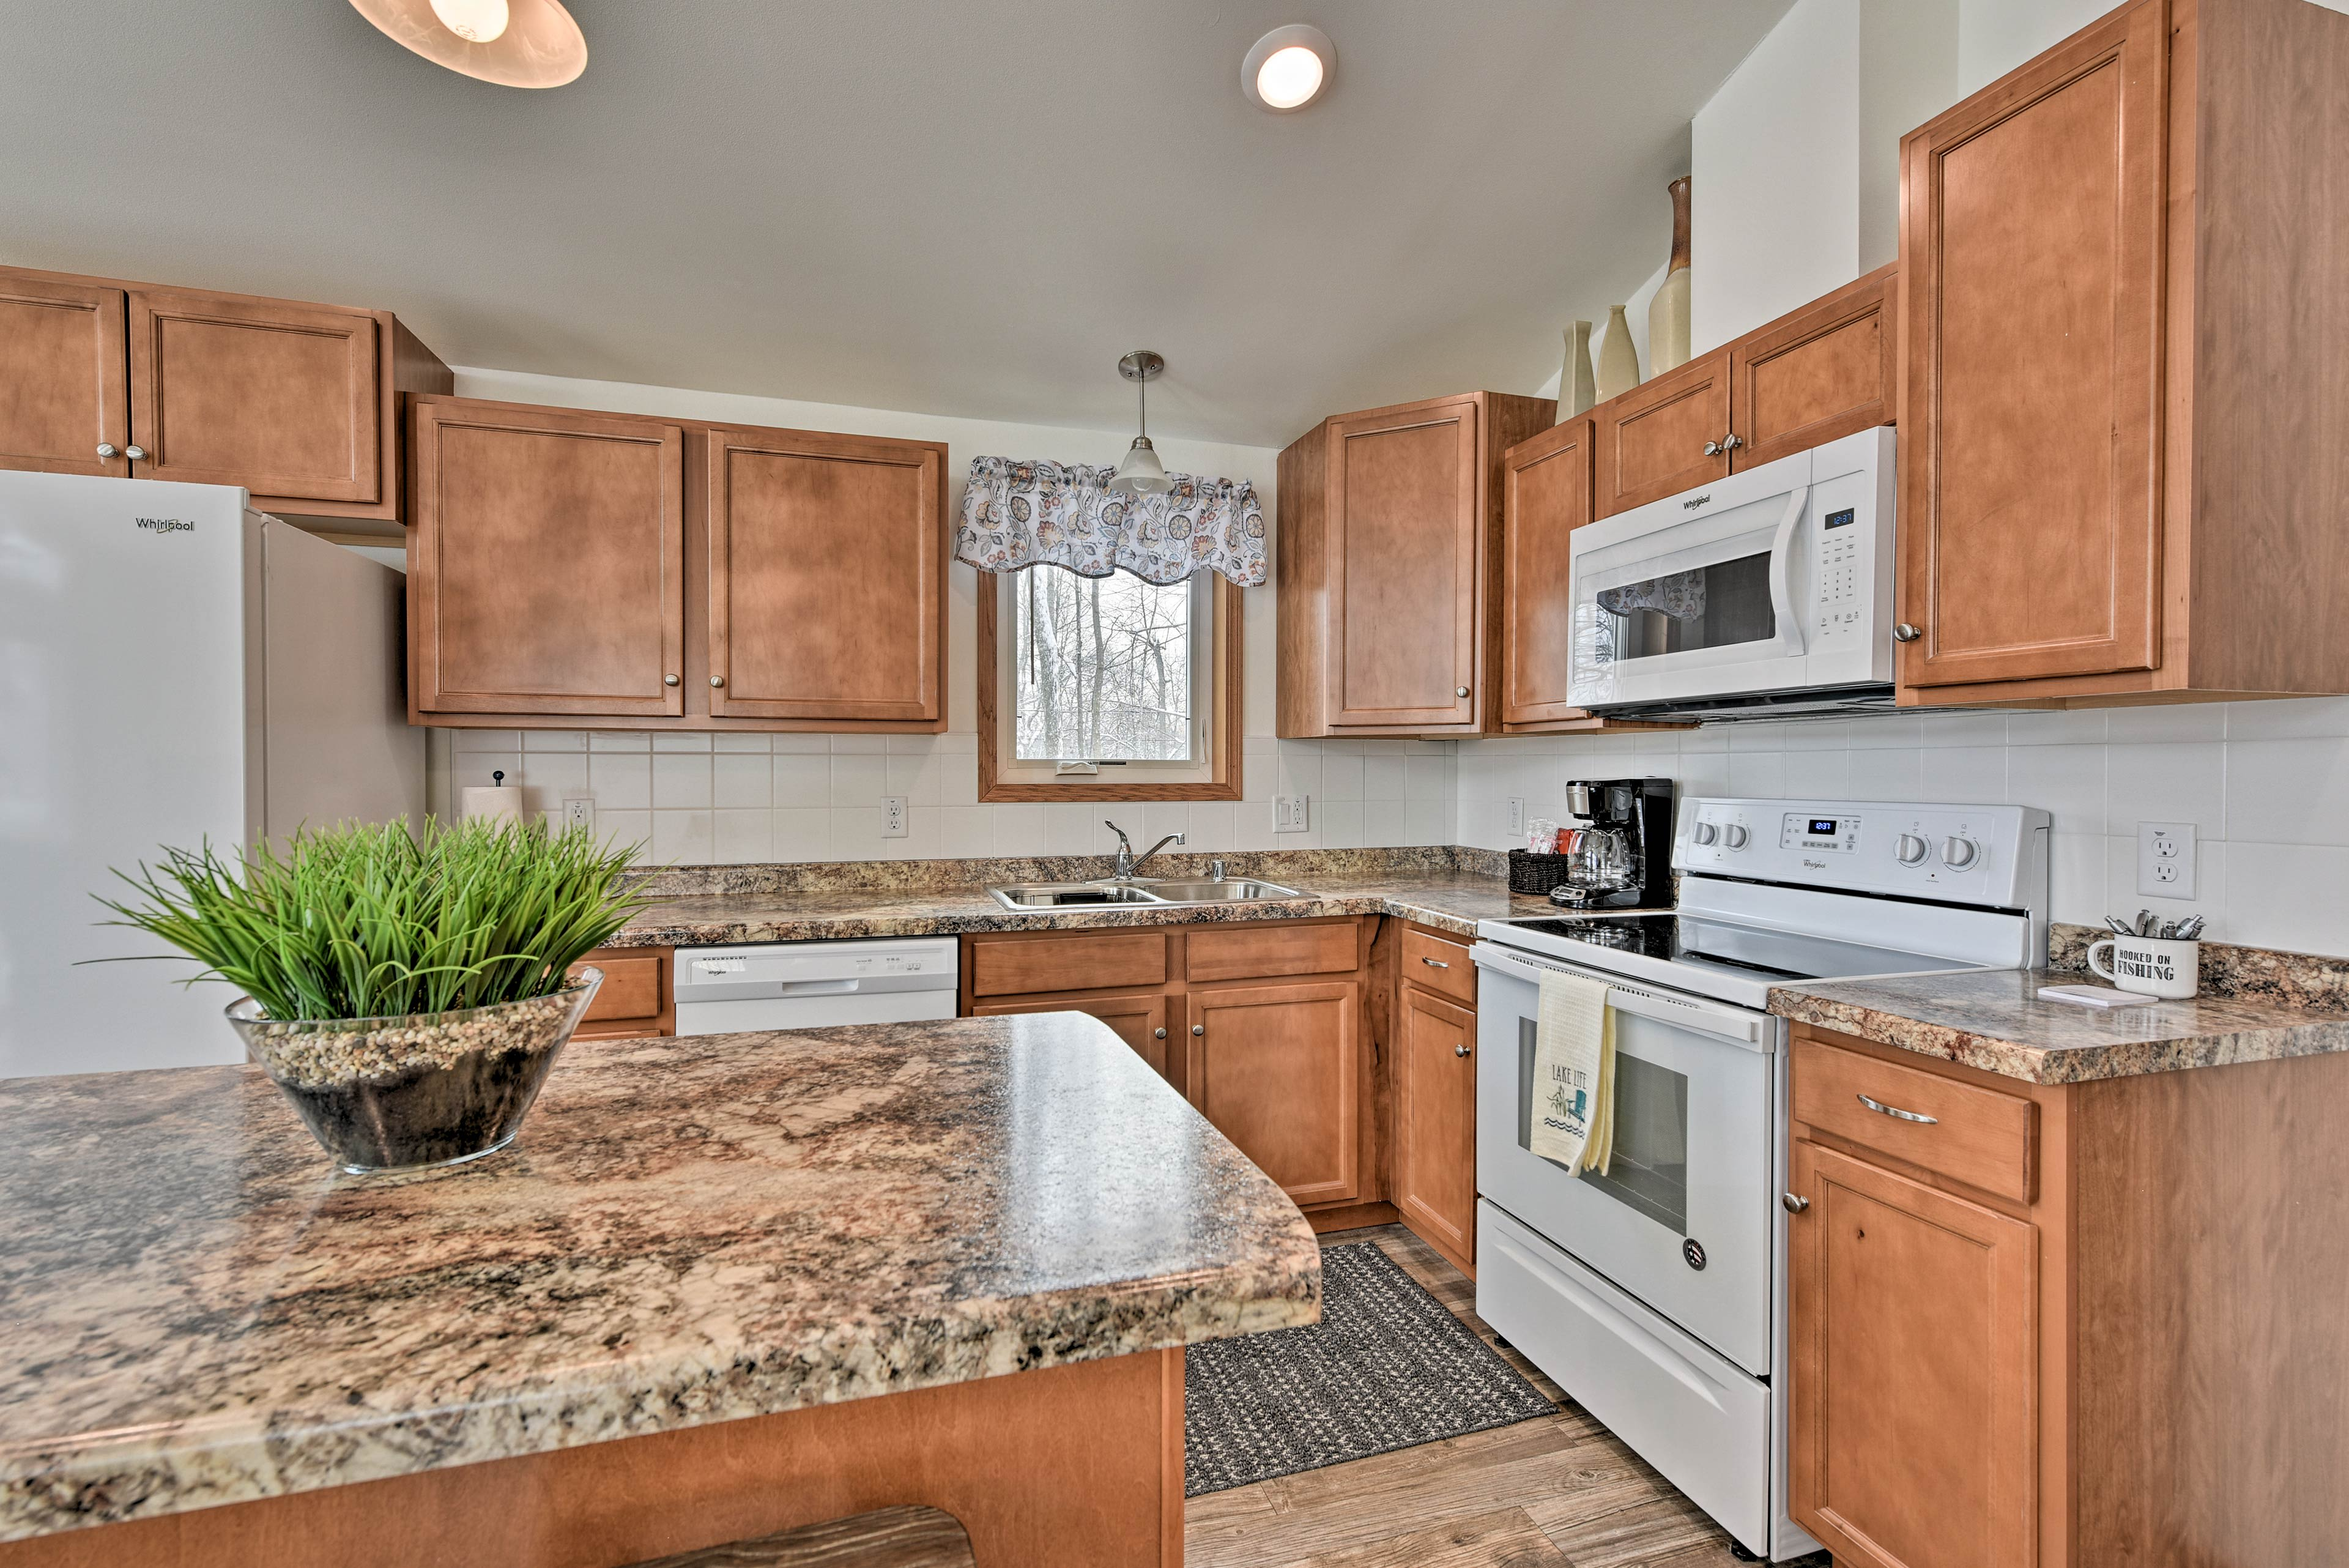 Whip up your favorite dishes in the fully equipped kitchen.